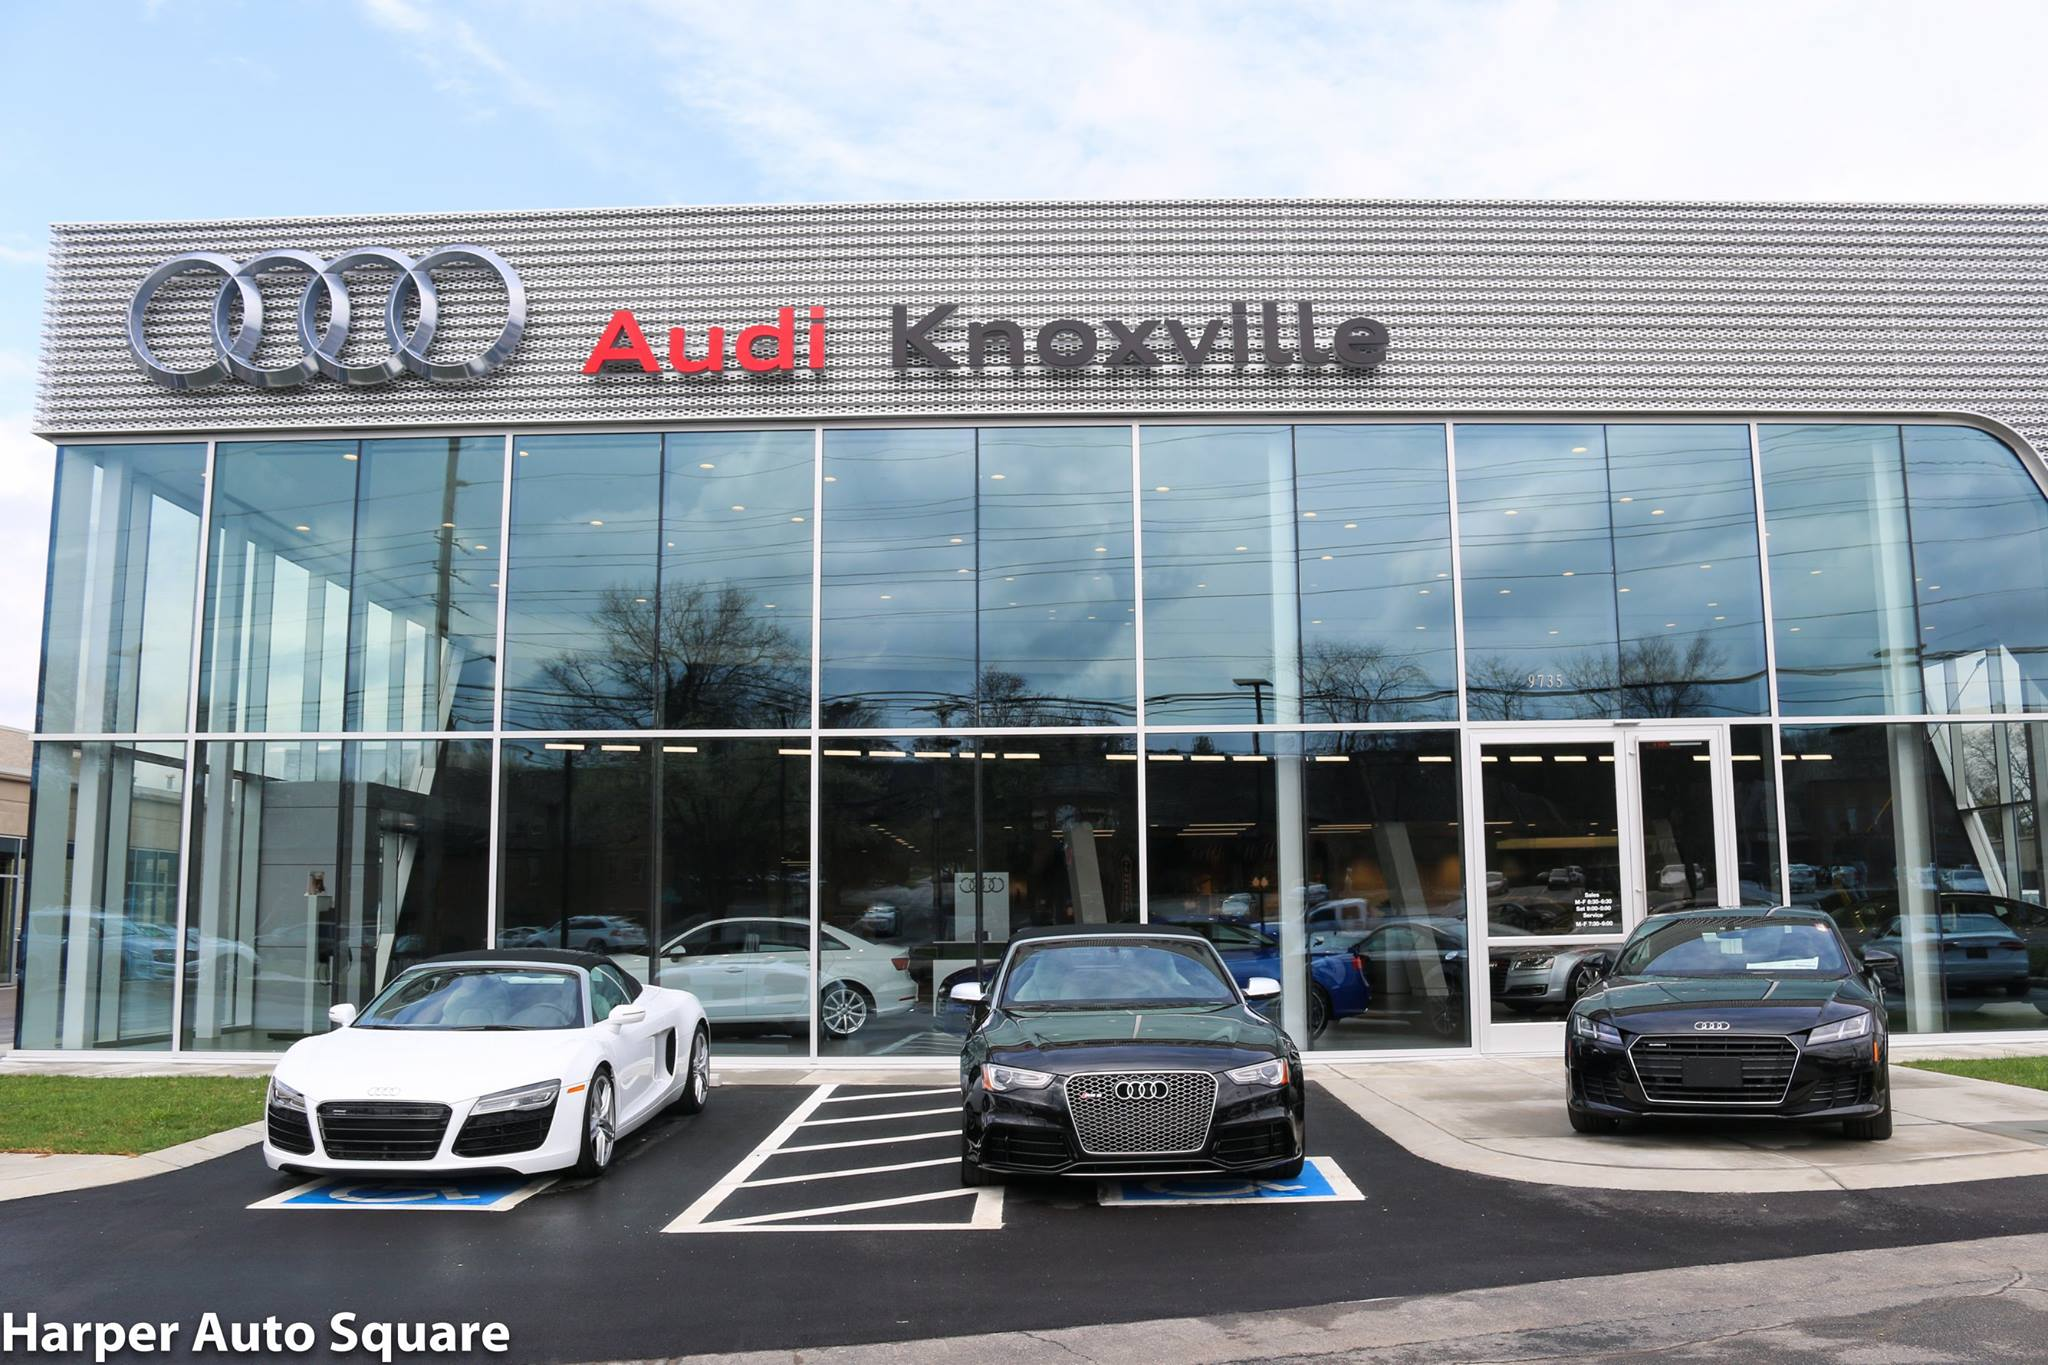 Audi Knoxville New Audi Dealership In Knoxville TN - Harper audi knoxville tn